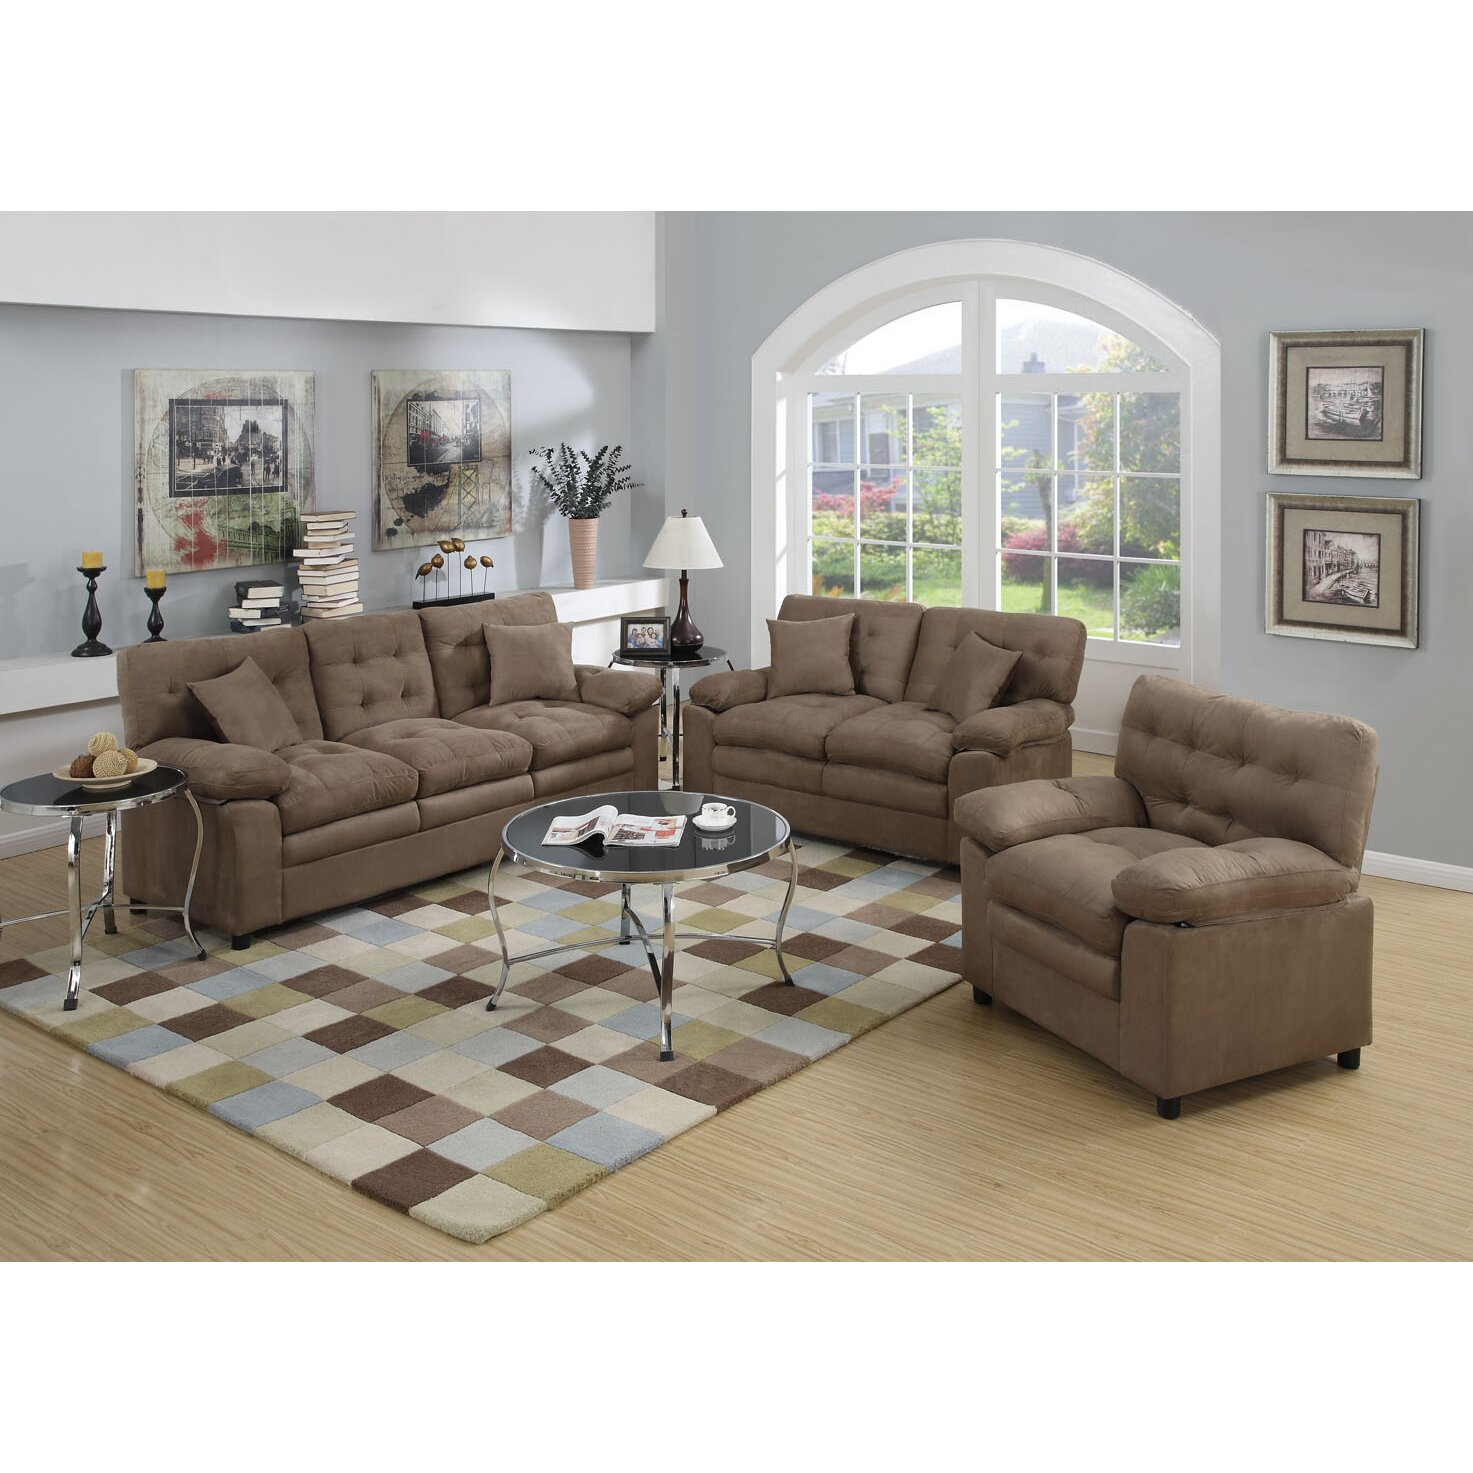 Poundex bobkona colona 3 piece living room set reviews for Drawing room furniture